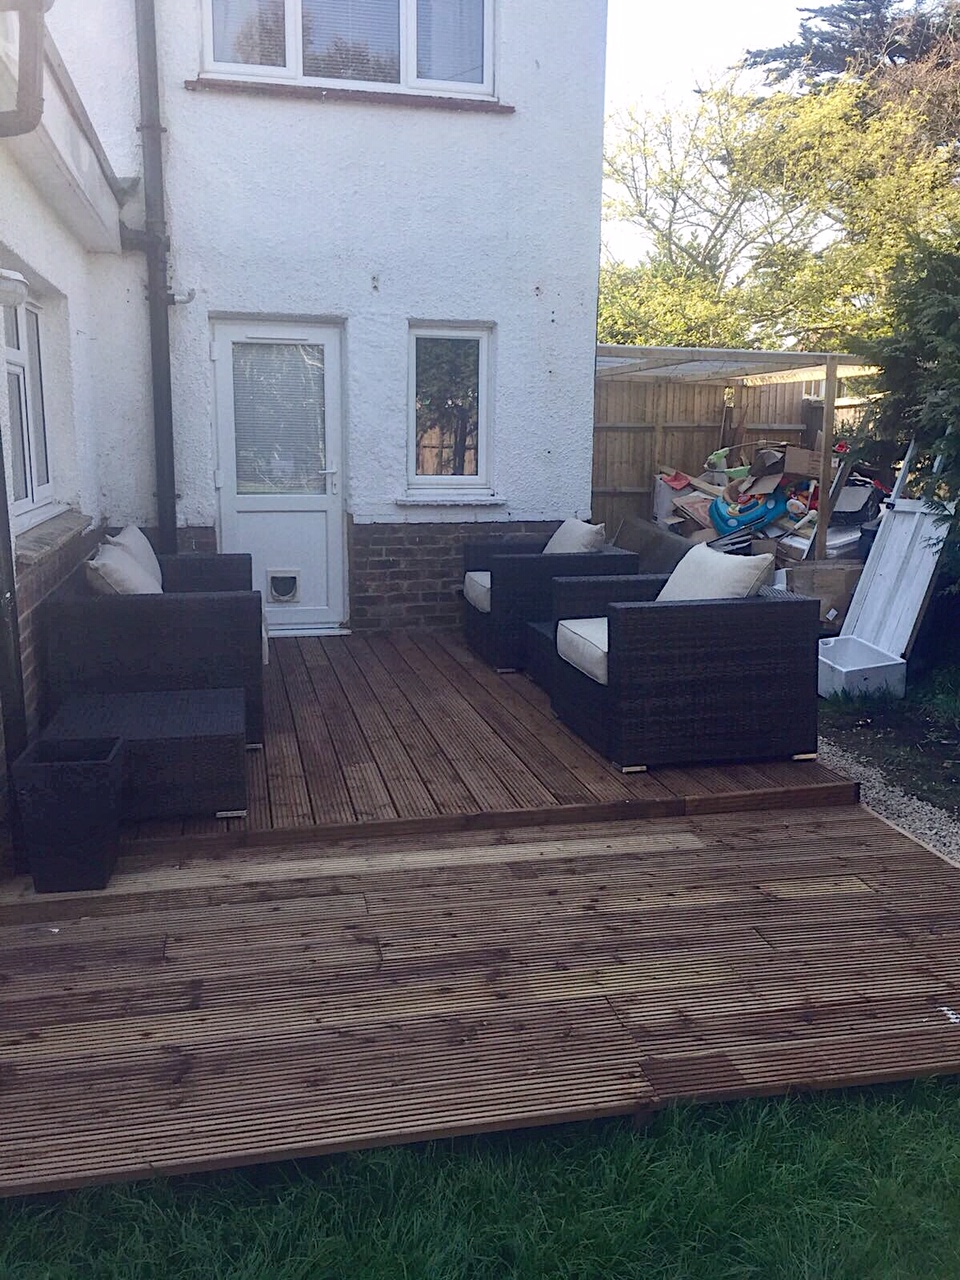 Our newly laid decking, ignore the MASSIVE pile of crap in the background. We were having our kitchen renovated at the same time.